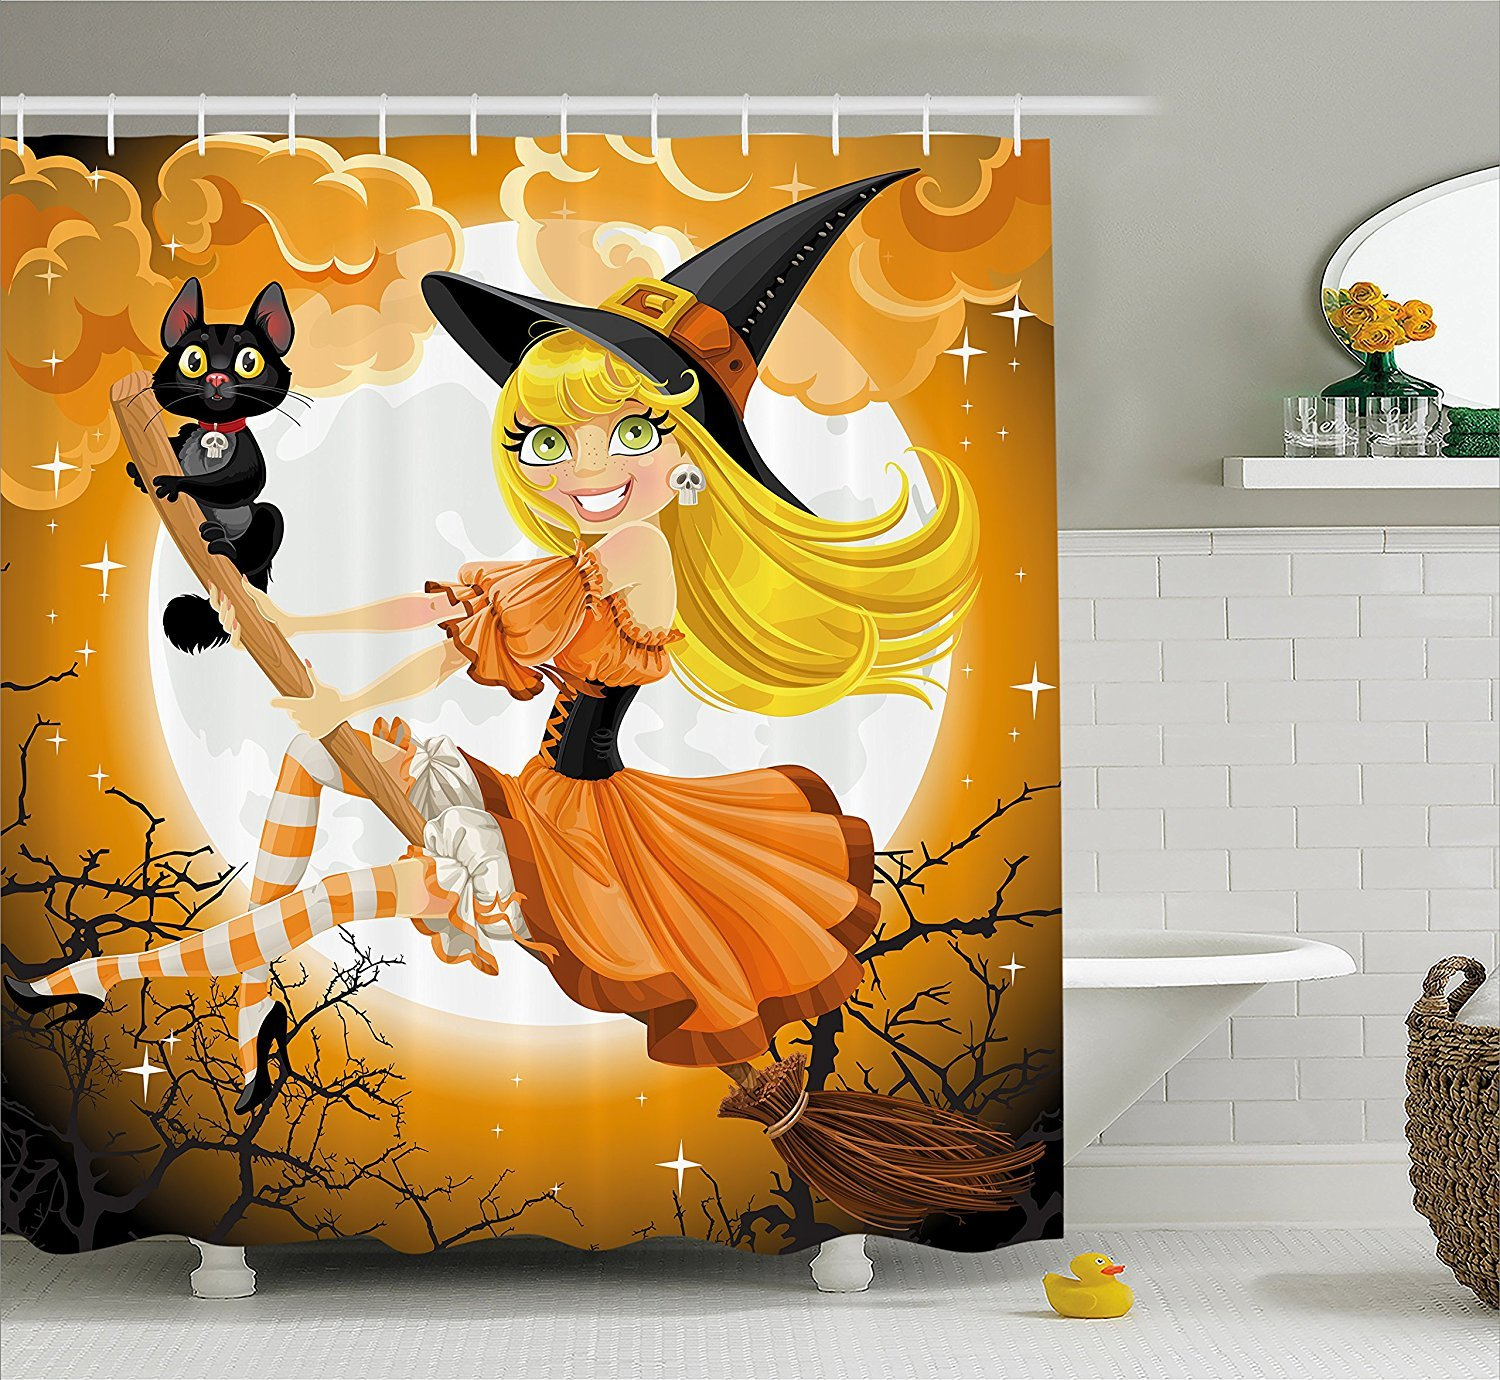 Halloween shower curtain - Fun For Families With Kids Halloween Witch And Pumpkin Shower Curtain Design